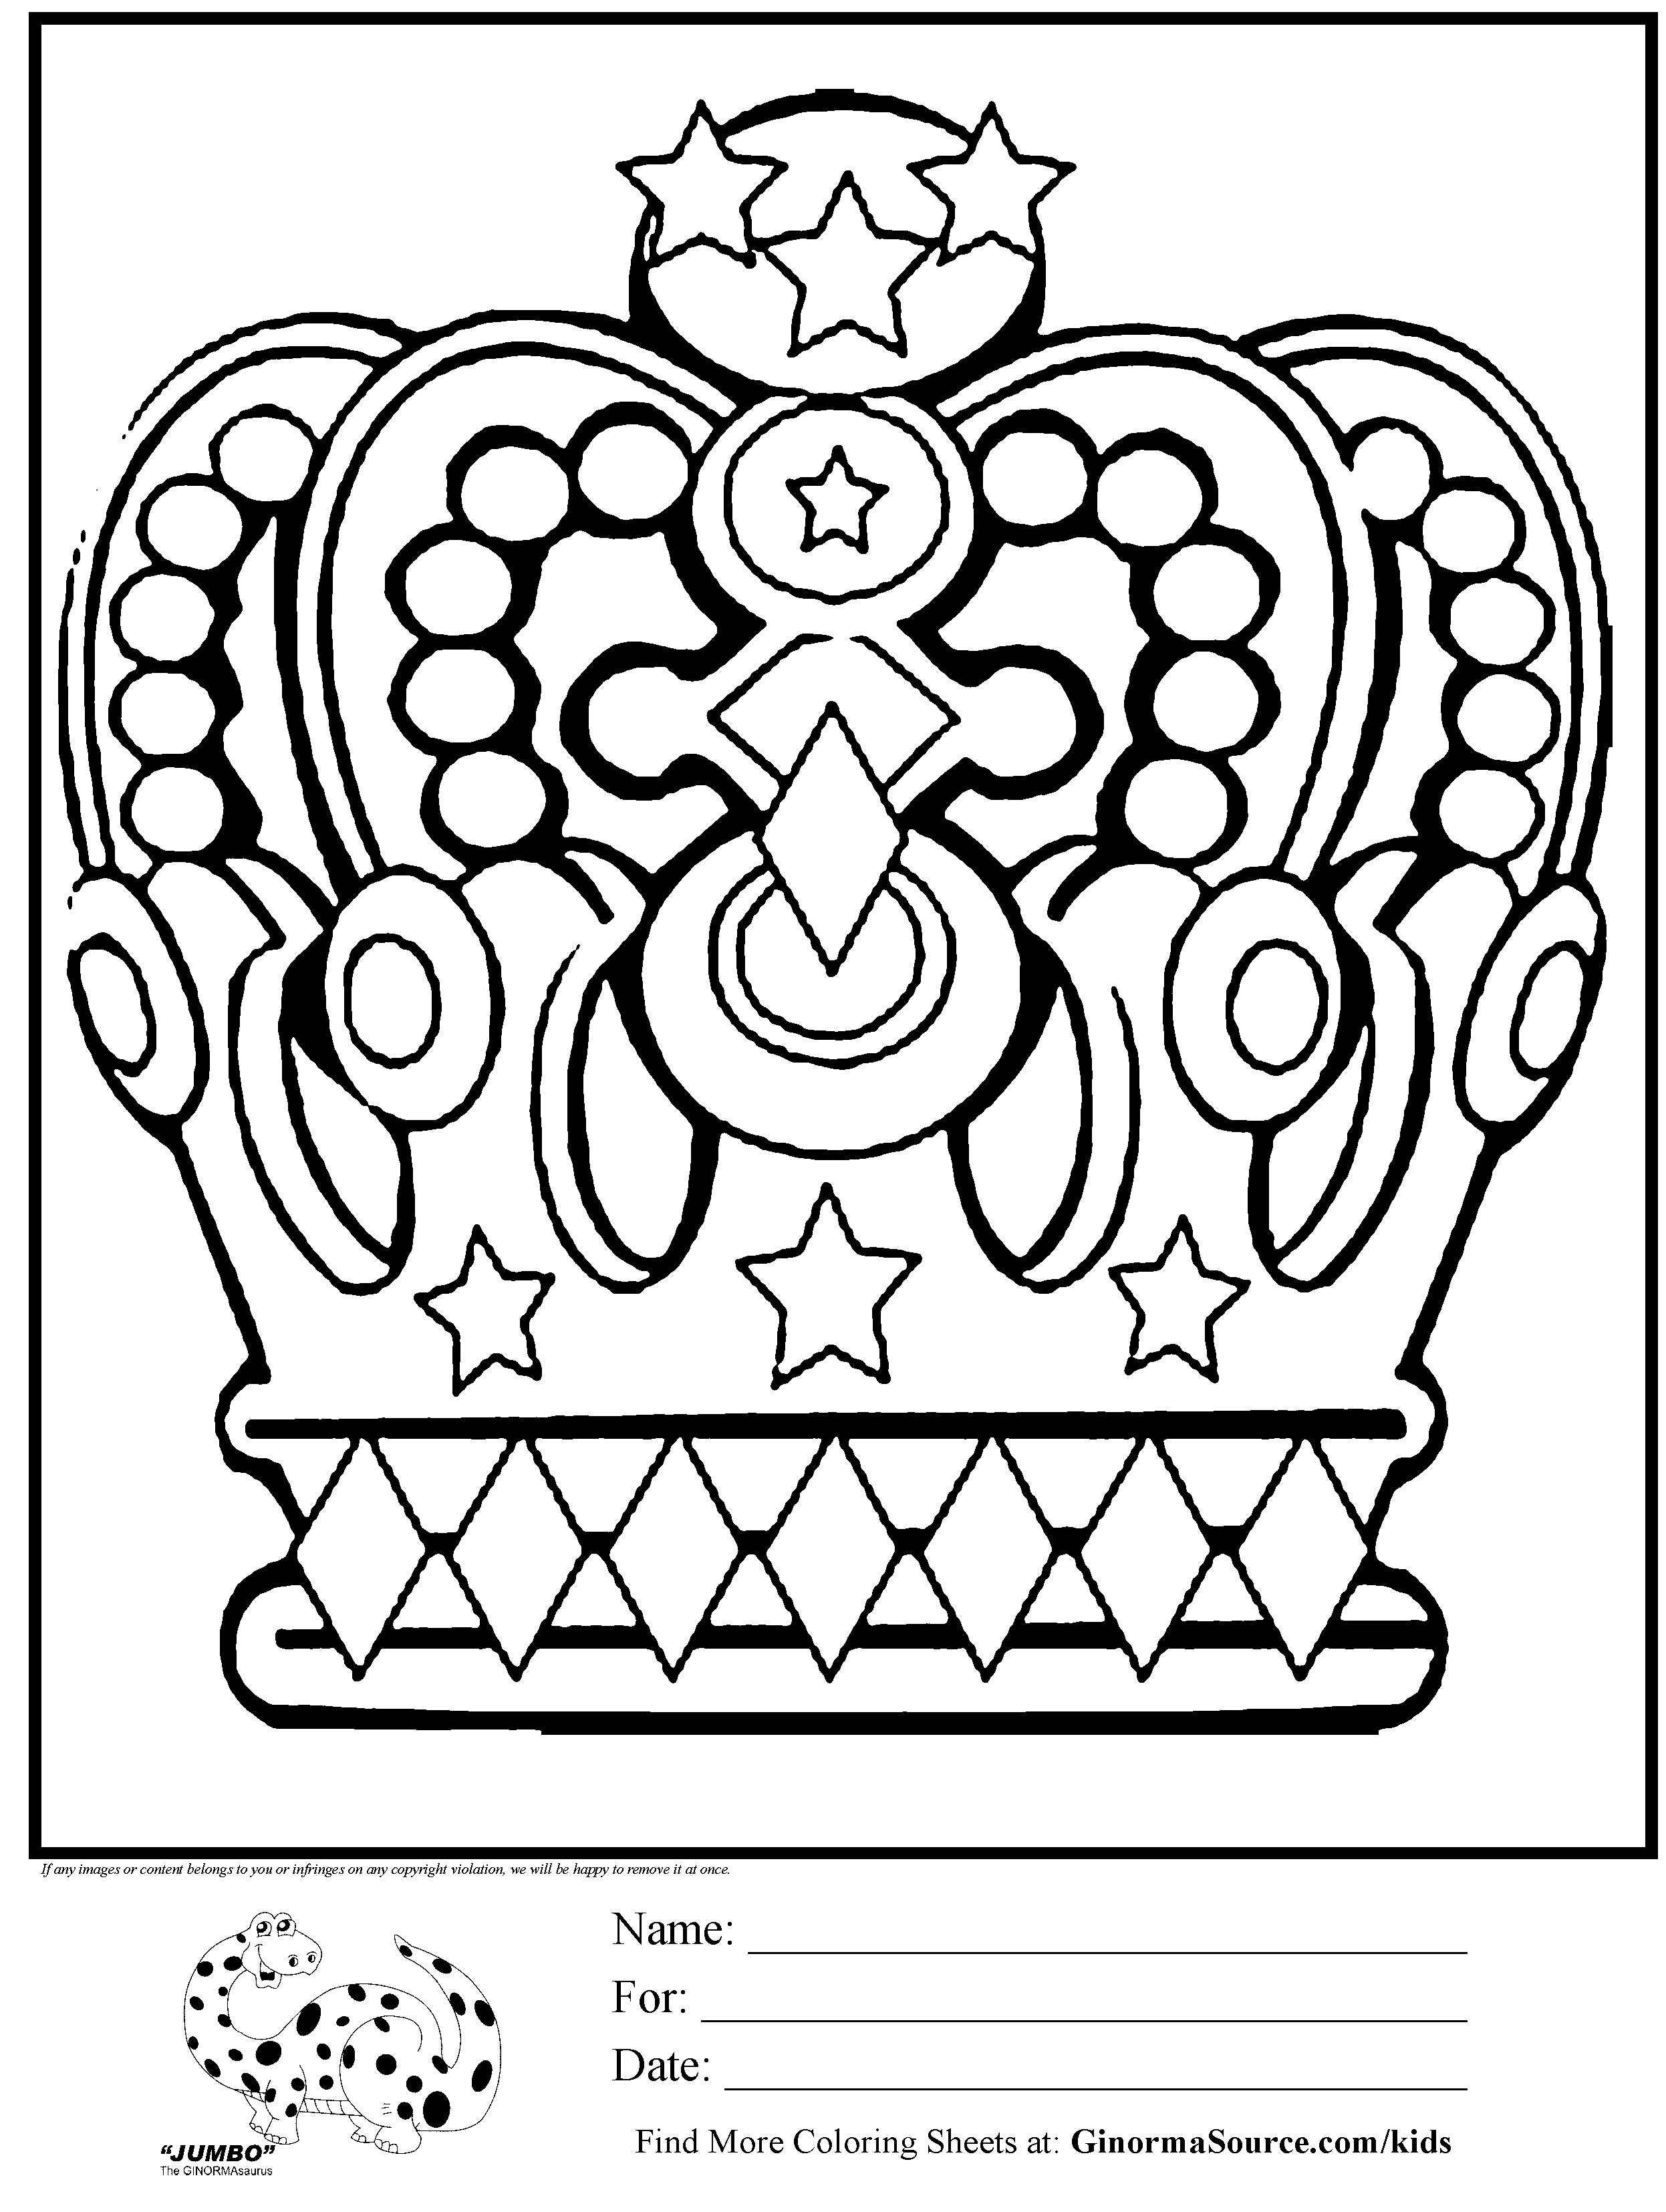 It's just a picture of Crown Coloring Pages Printable inside full page